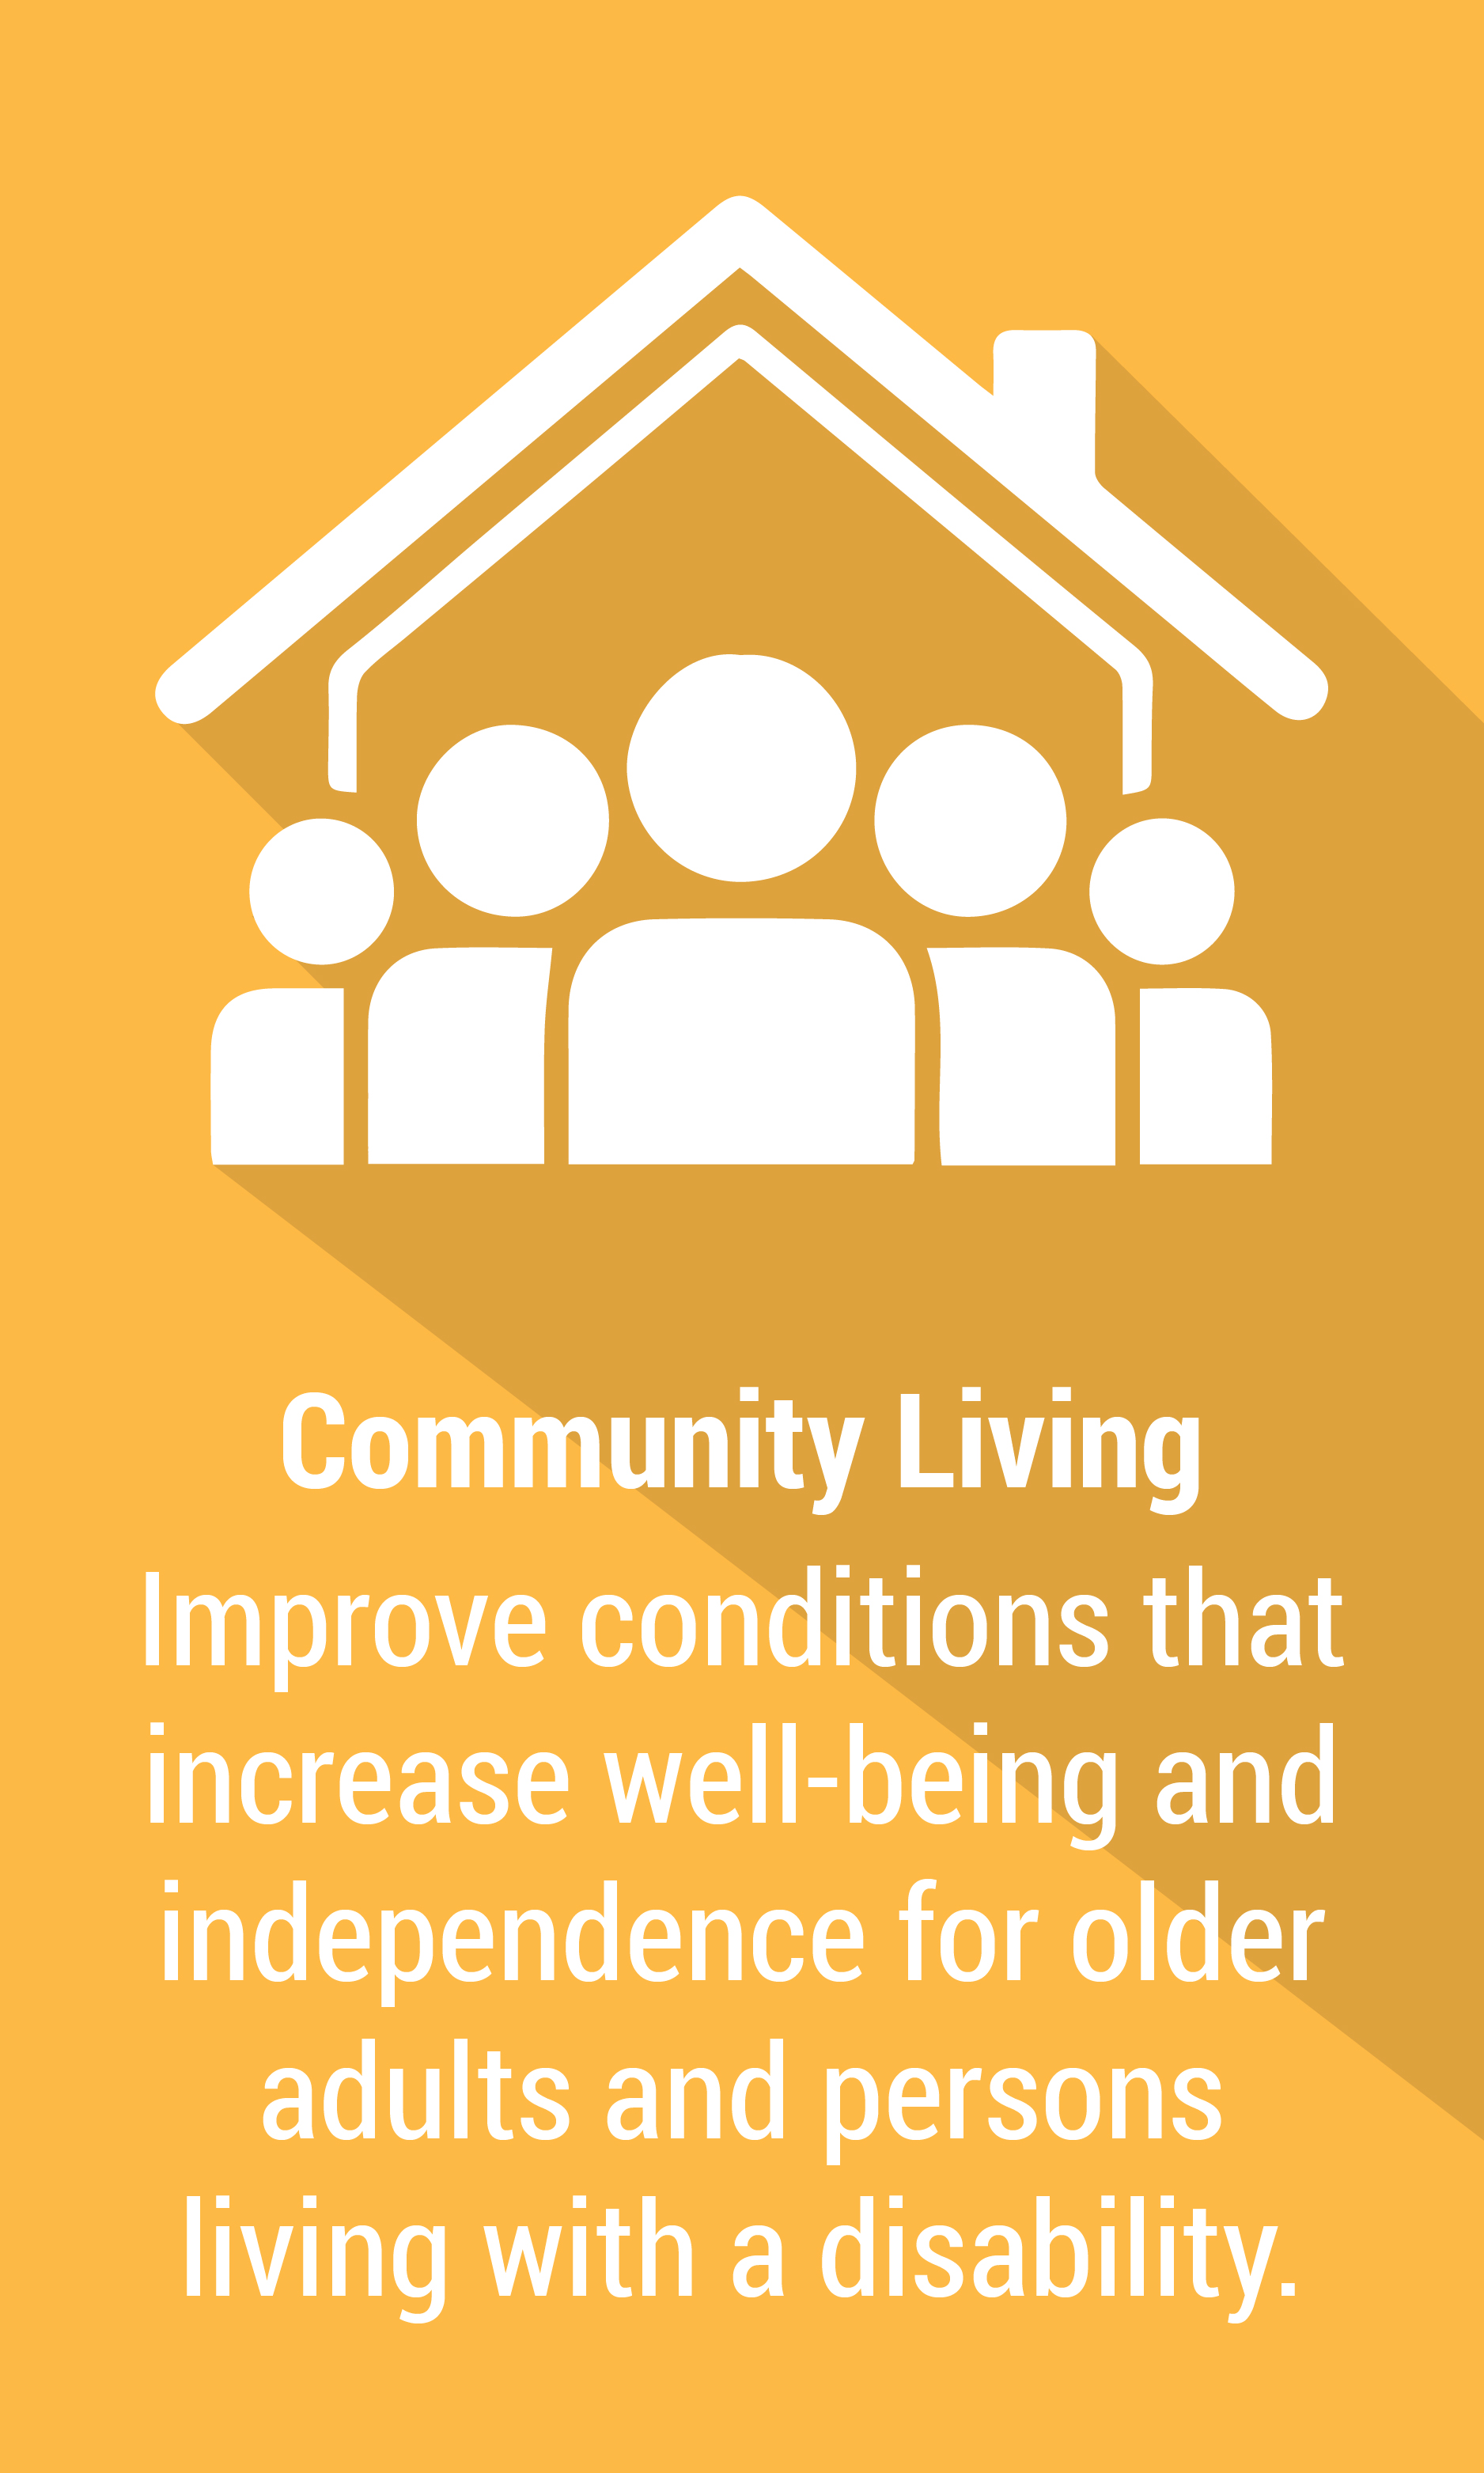 Community Living - Addressing the Issues